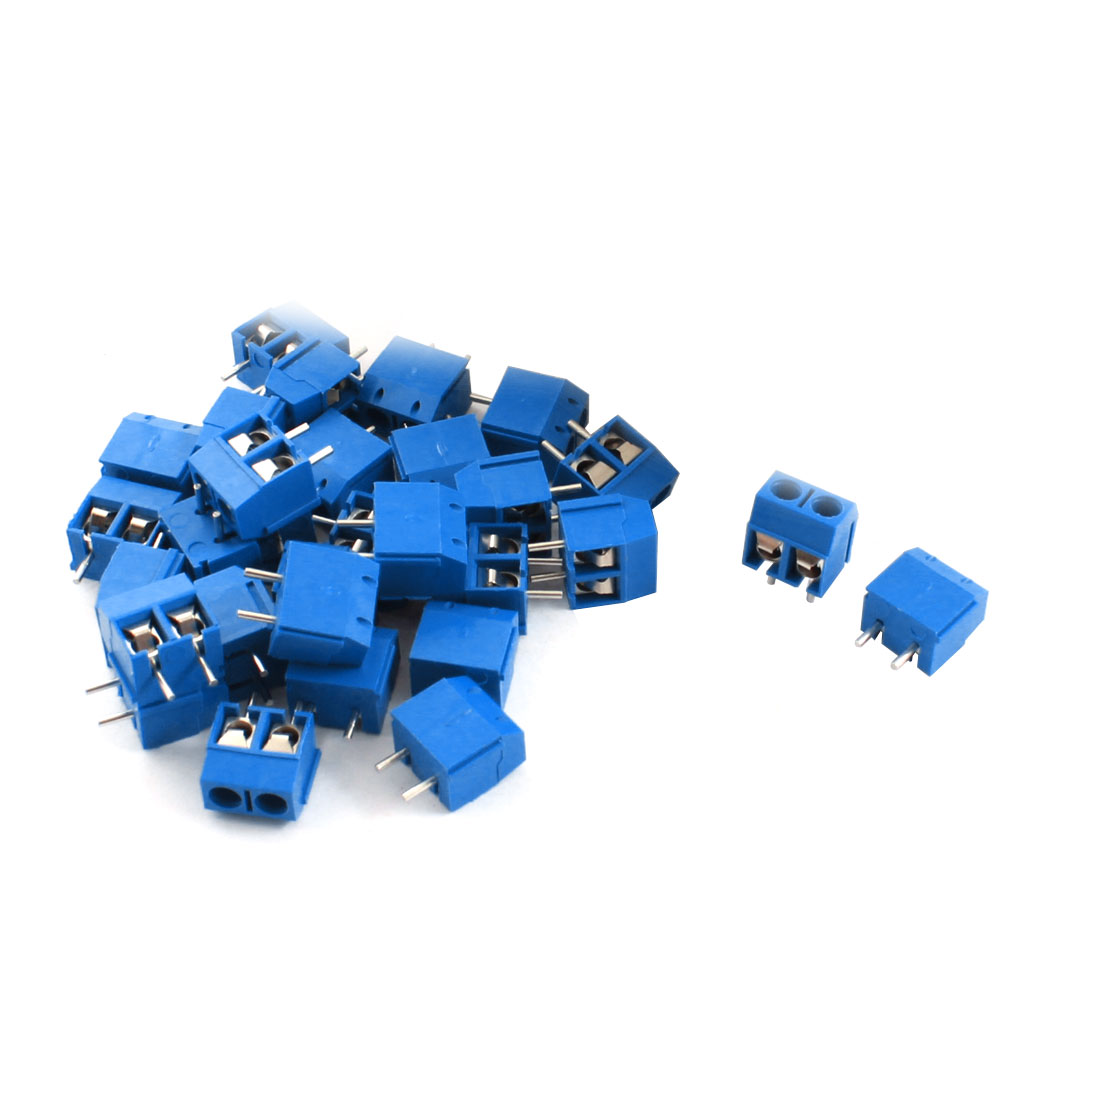 30Pcs 5.08mm Pitch 2Pin PCB Mount Power Screw Terminal Block Connector